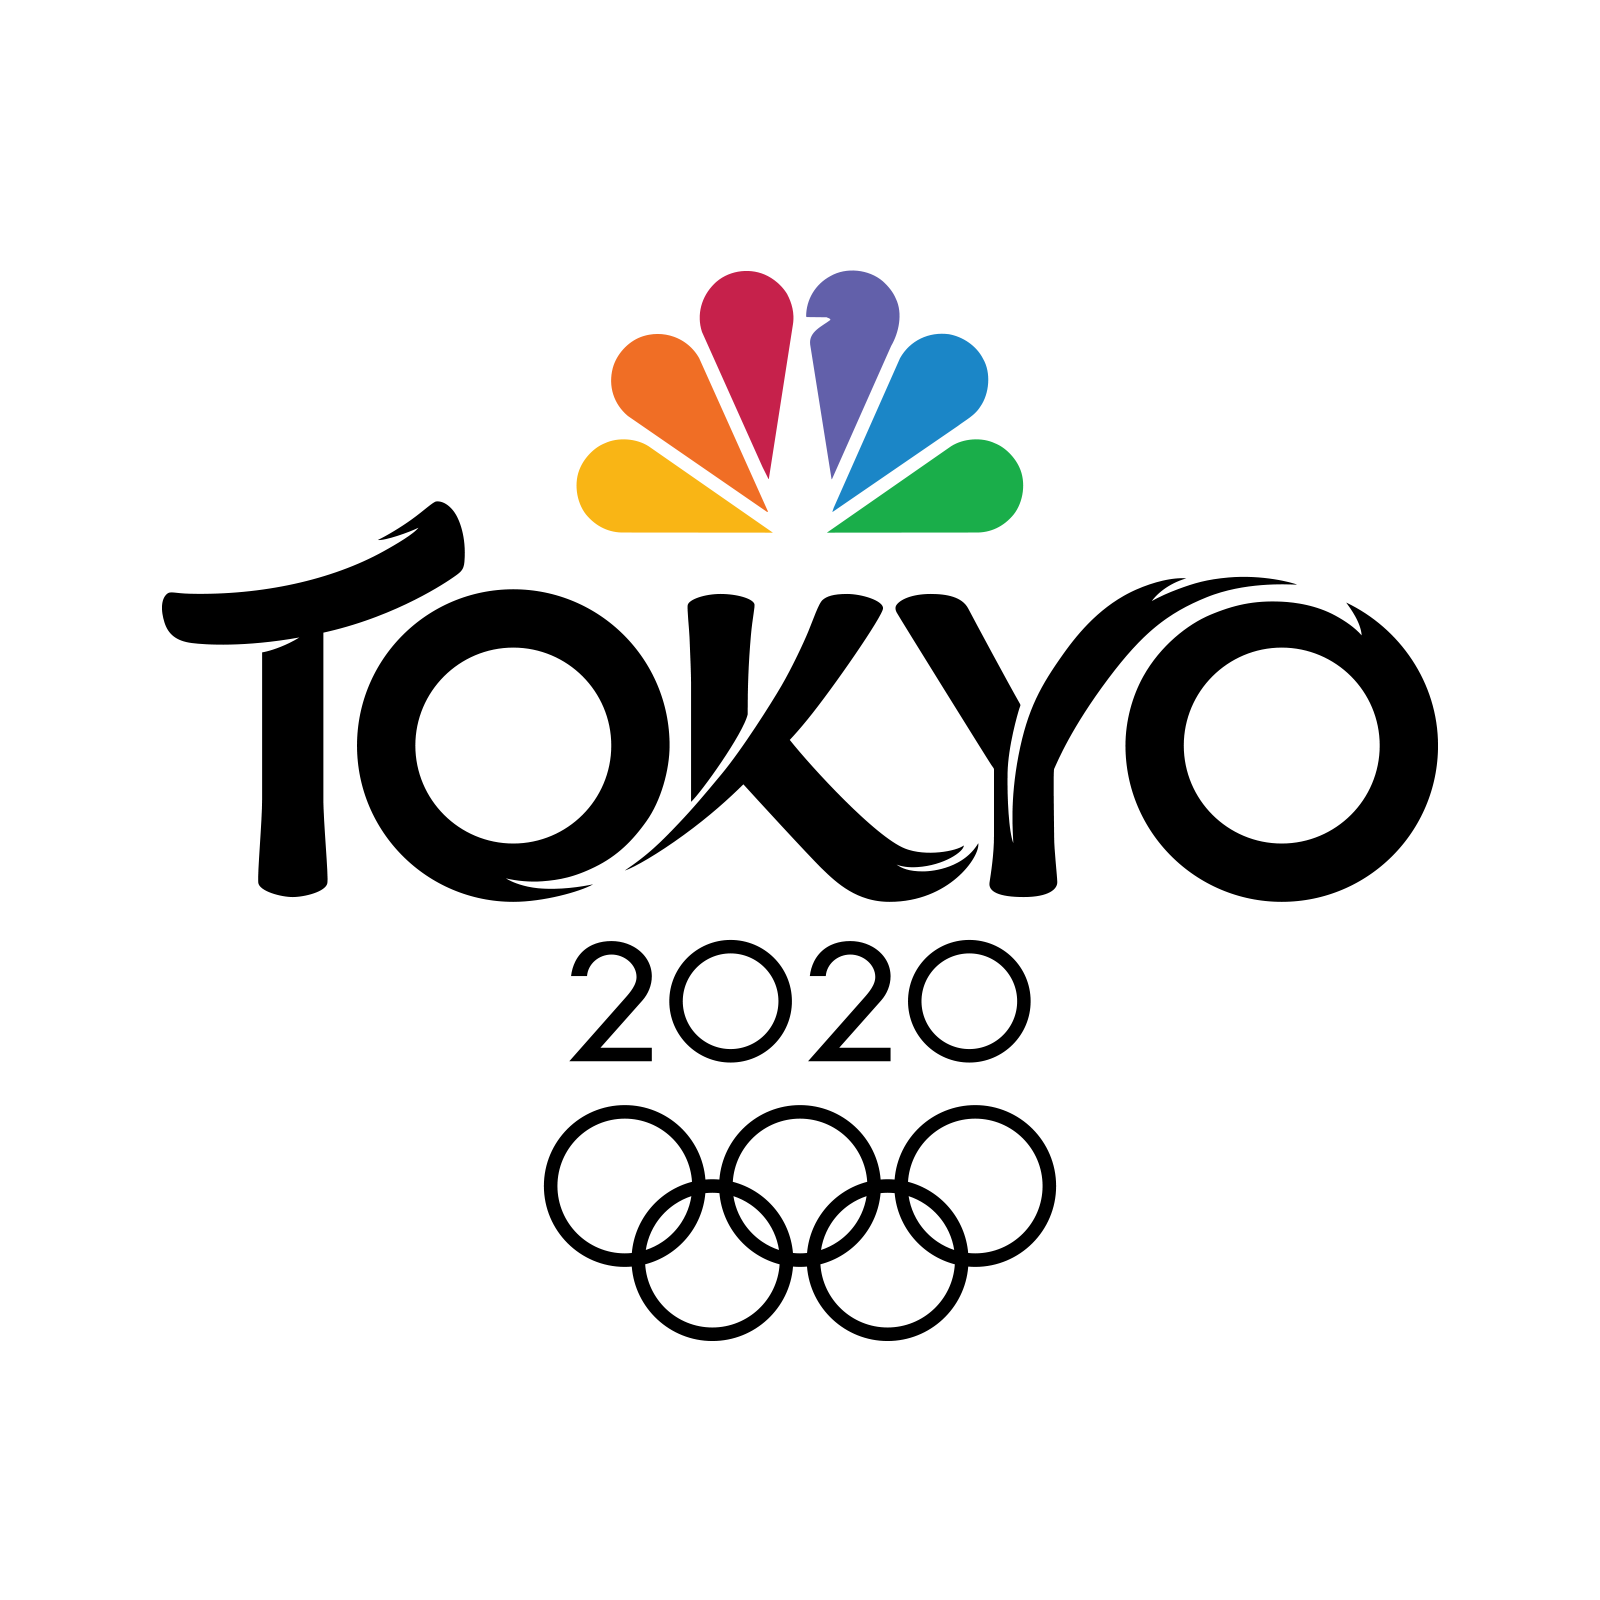 NBCUniversal reveals plans for record broadcast coverage at Tokyo 2020